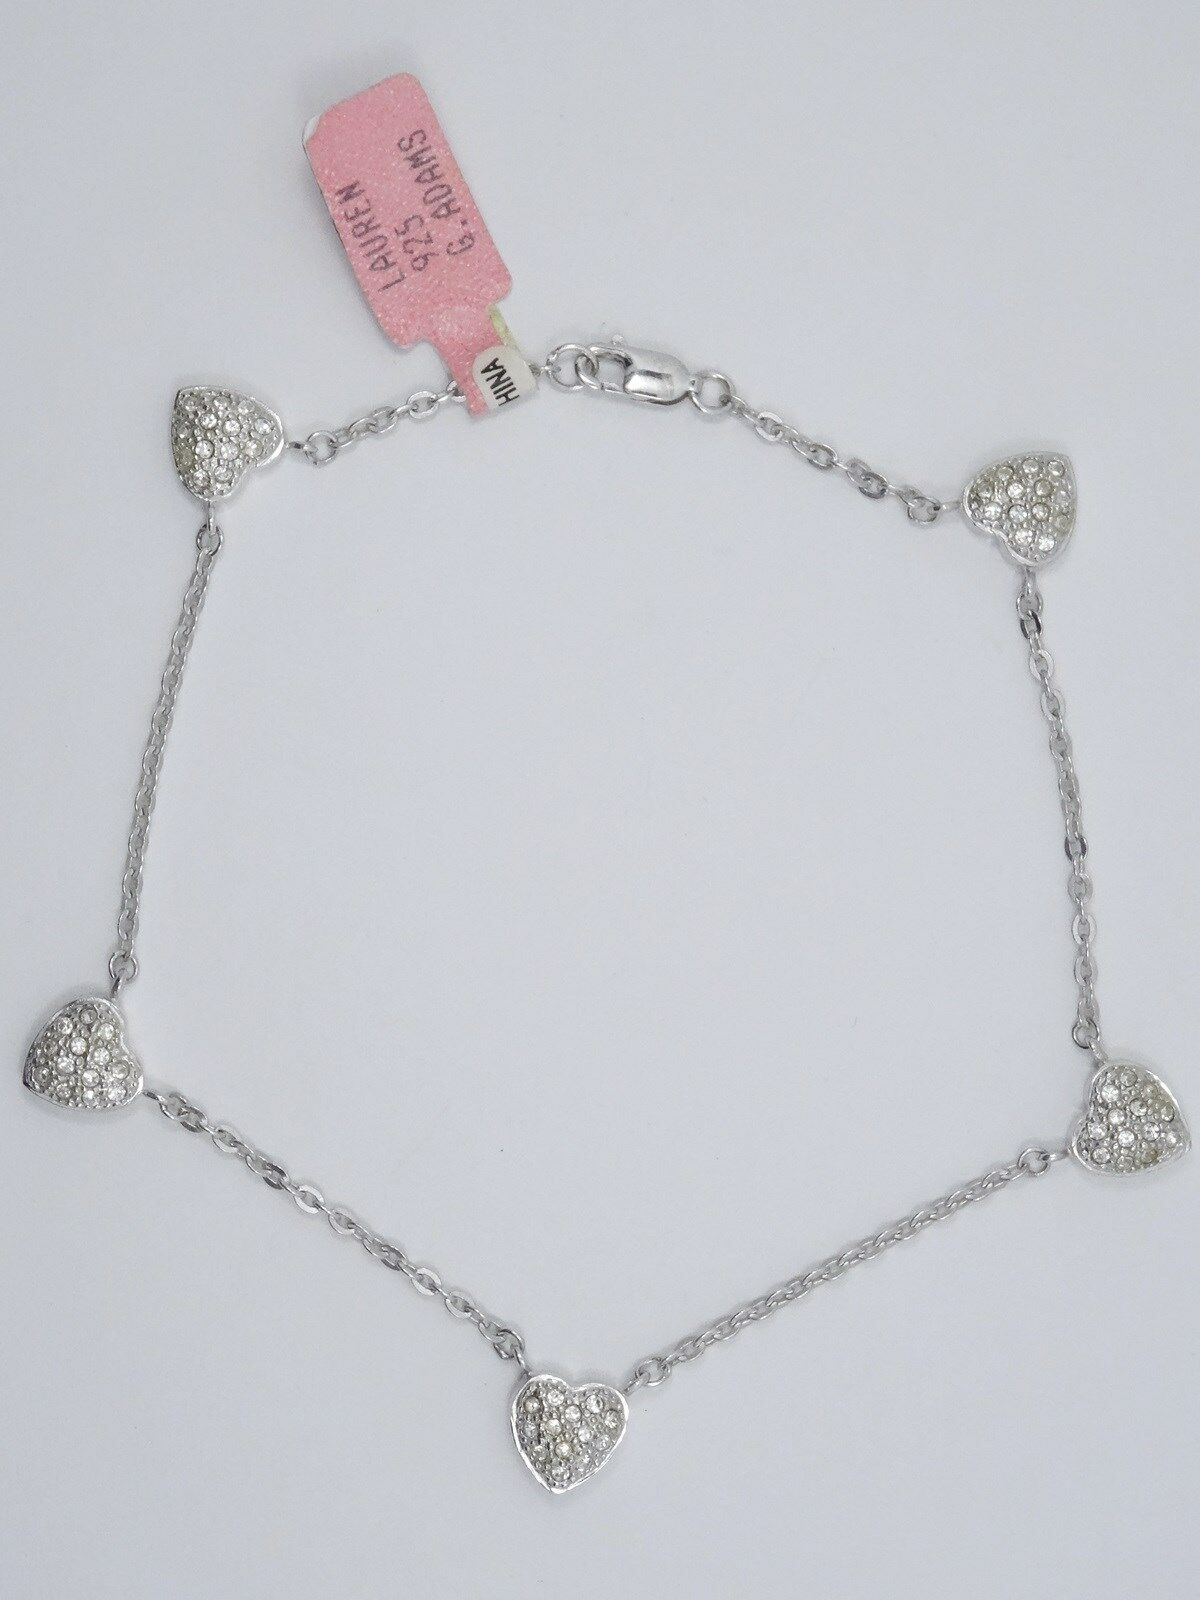 NEW with TAG PAVE CUBIC ZIRCONIA HEARTS STERLING ANKLET BRACELET  9    9.1 g